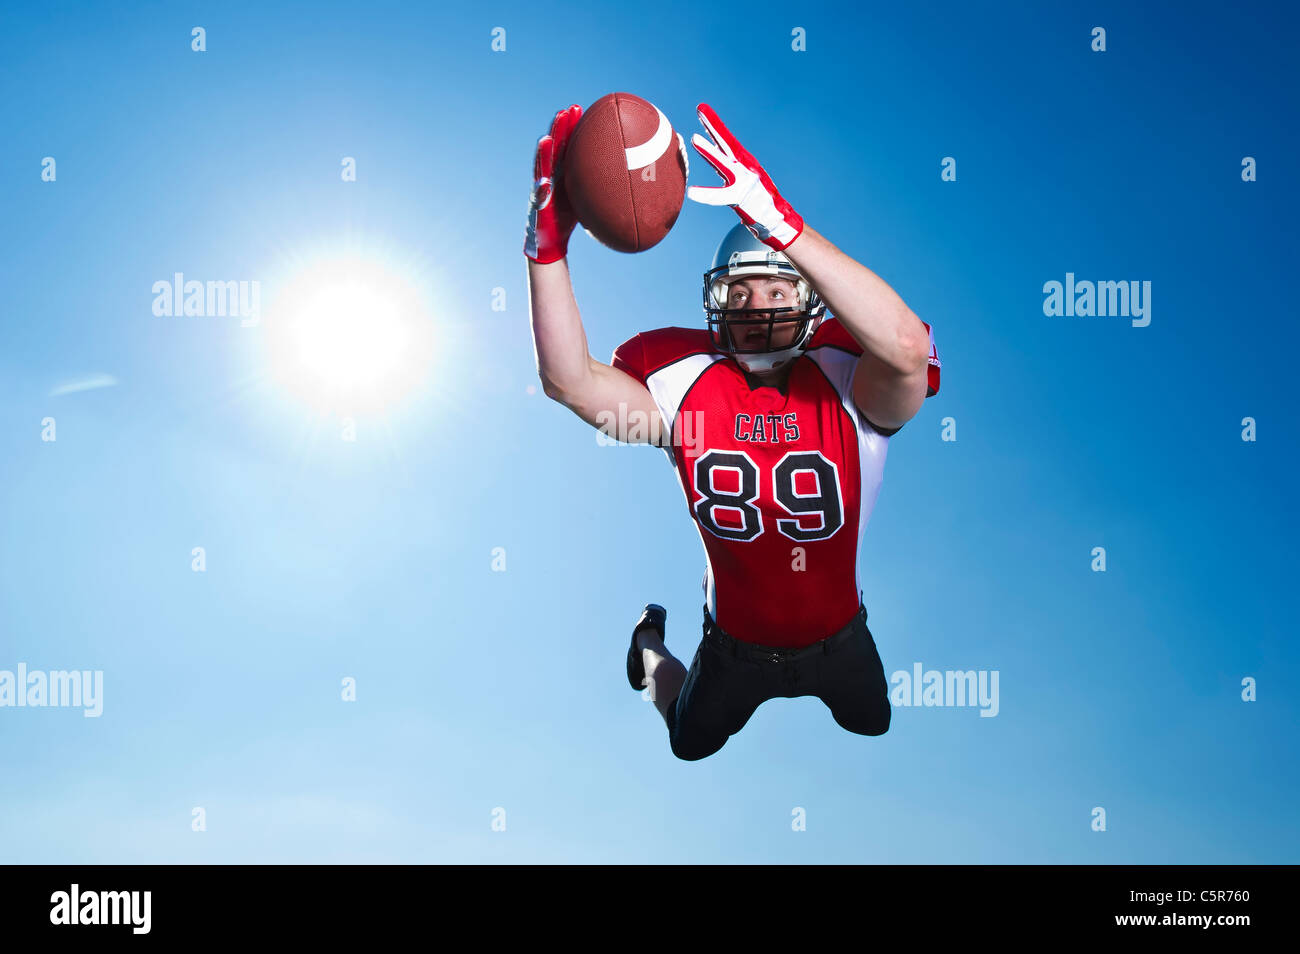 American Footballer focused on ball to make the catch. - Stock Image